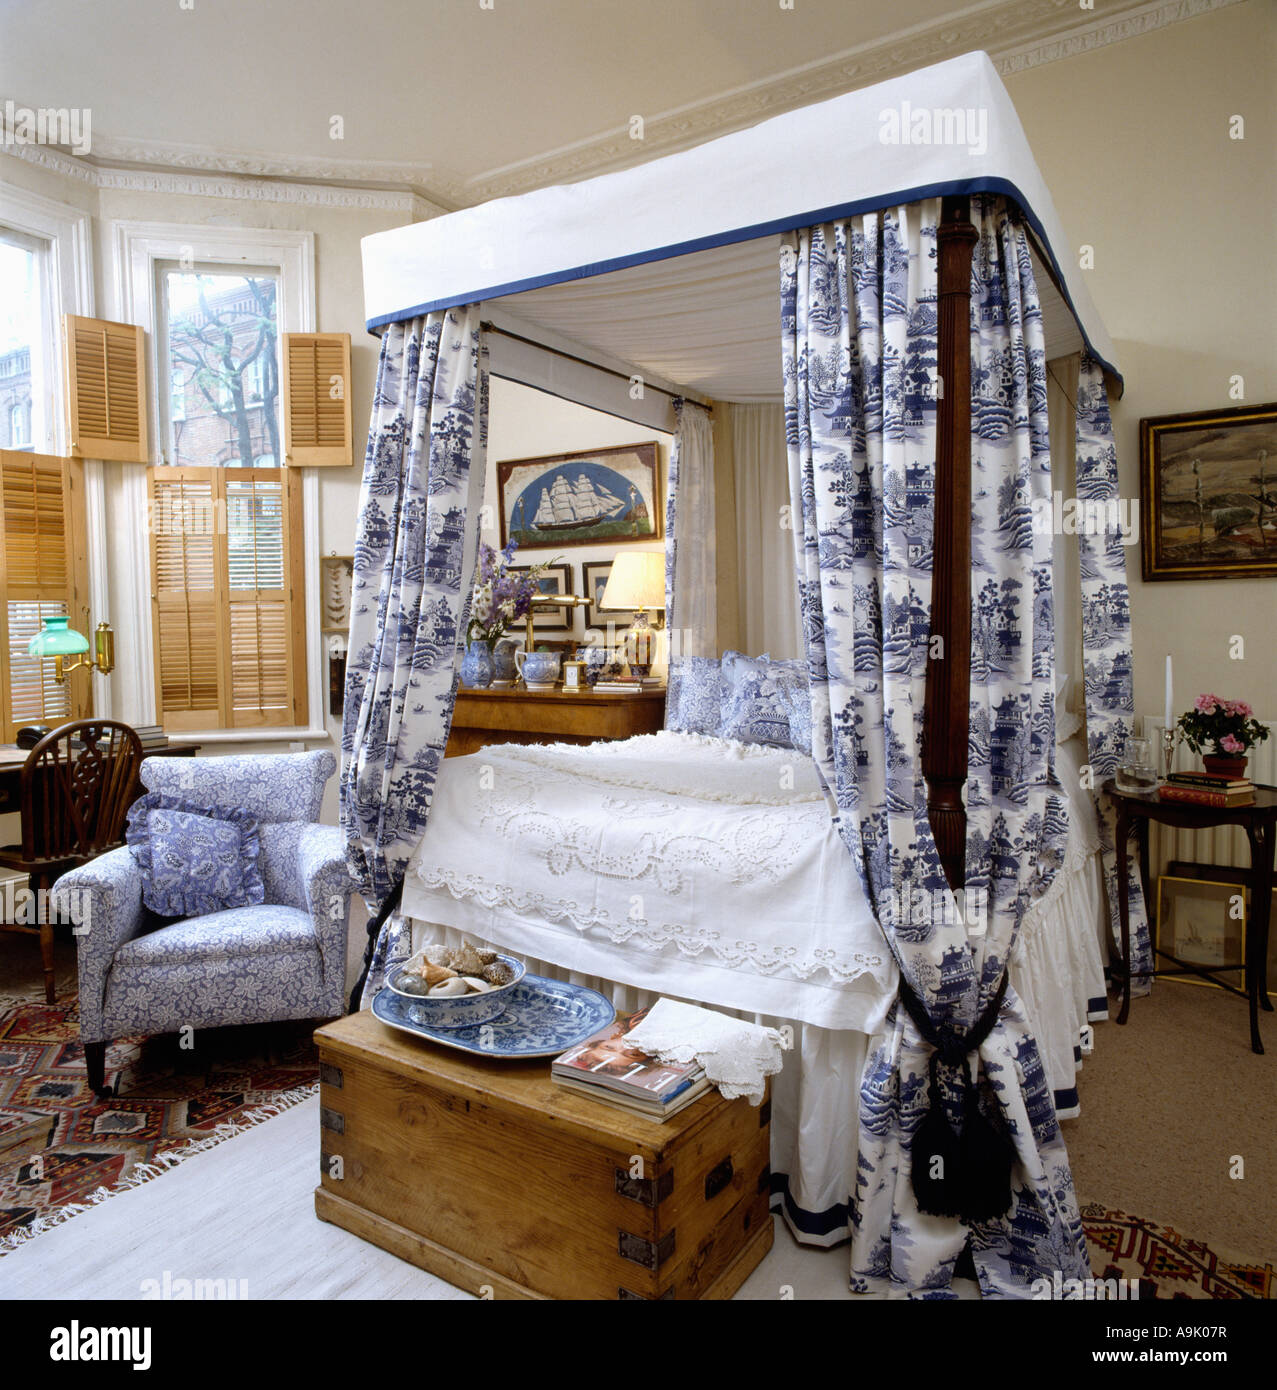 Bedroom with four poster bed with blue and white willow pattern stock photo 12384154 alamy - Four poster bed curtains ...